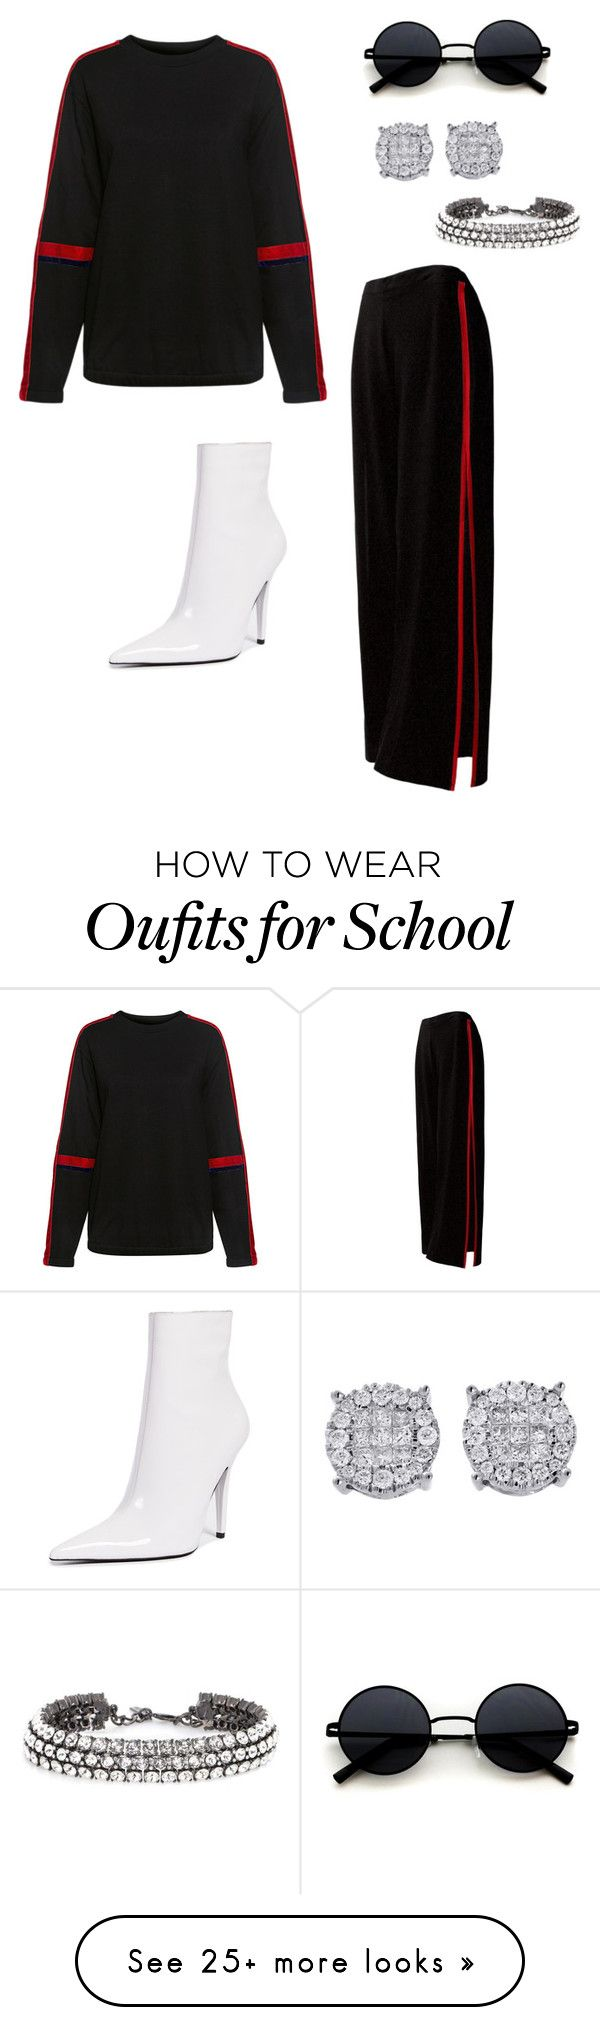 """Go to outfit"" by nooranssf on Polyvore featuring Public School, Sans Souci, Oscar de la Renta, Jeffrey Campbell and Hoodies"